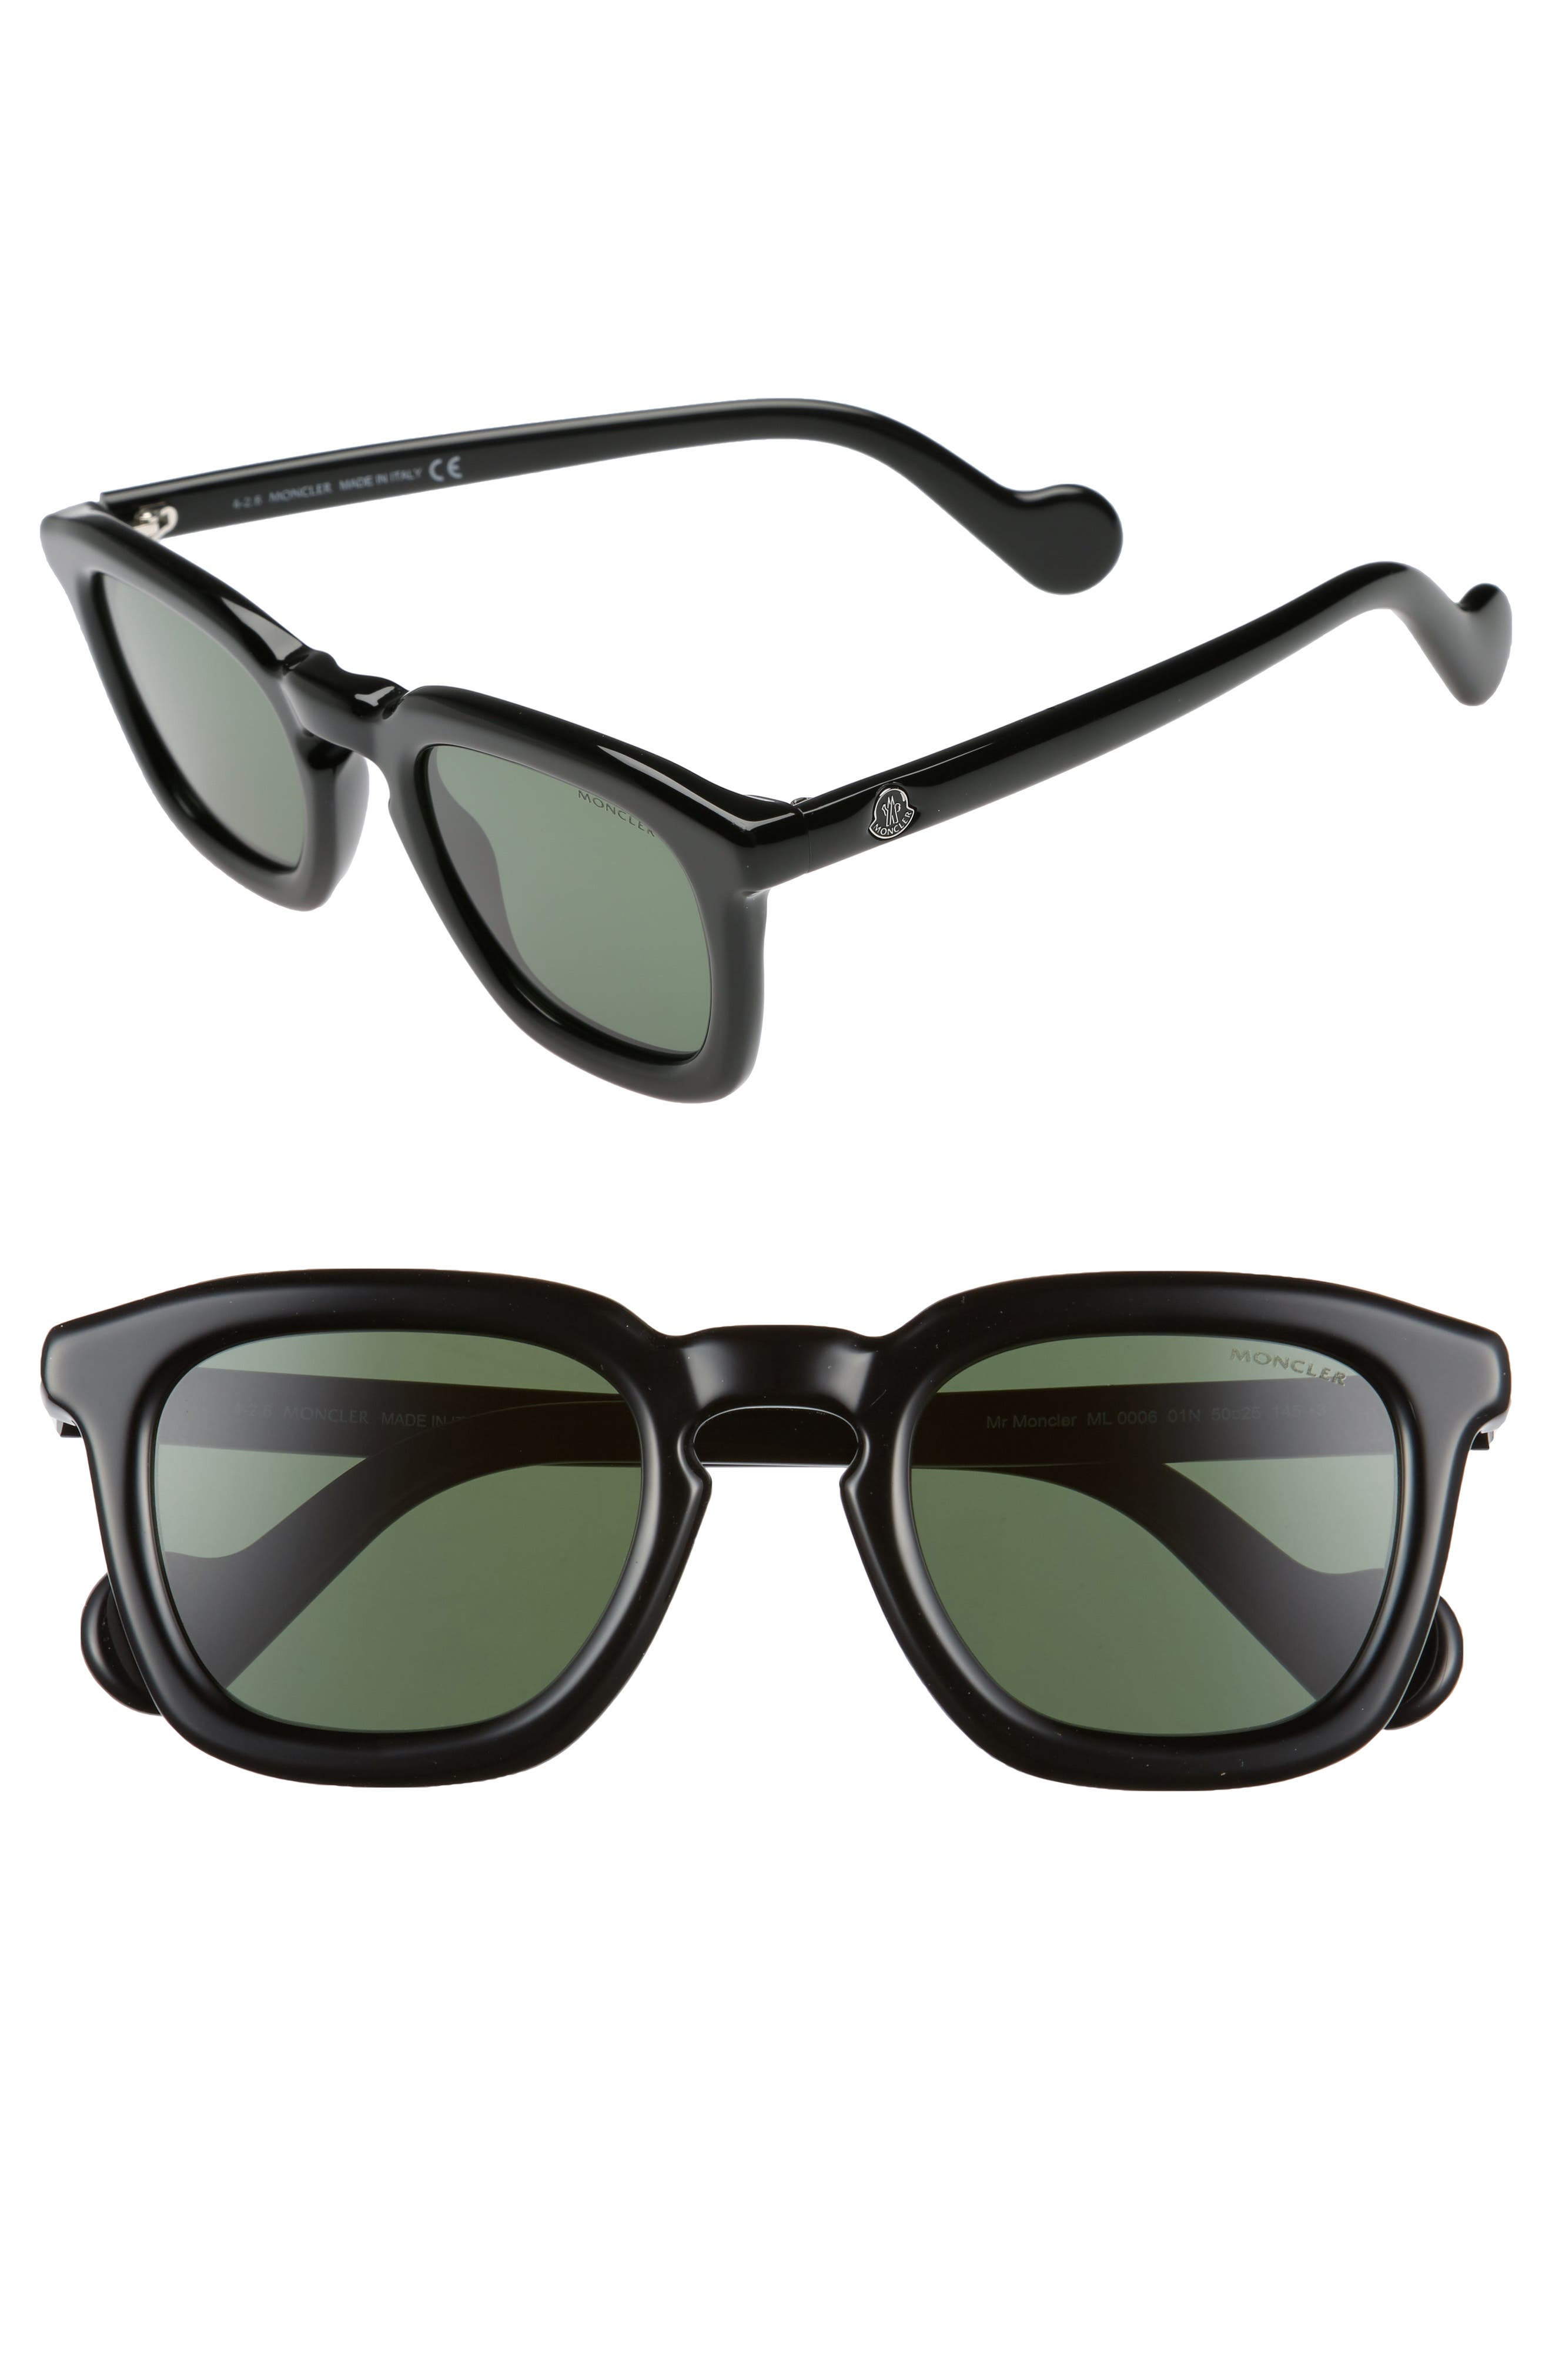 Main Image - Moncler 50mm Square Sunglasses